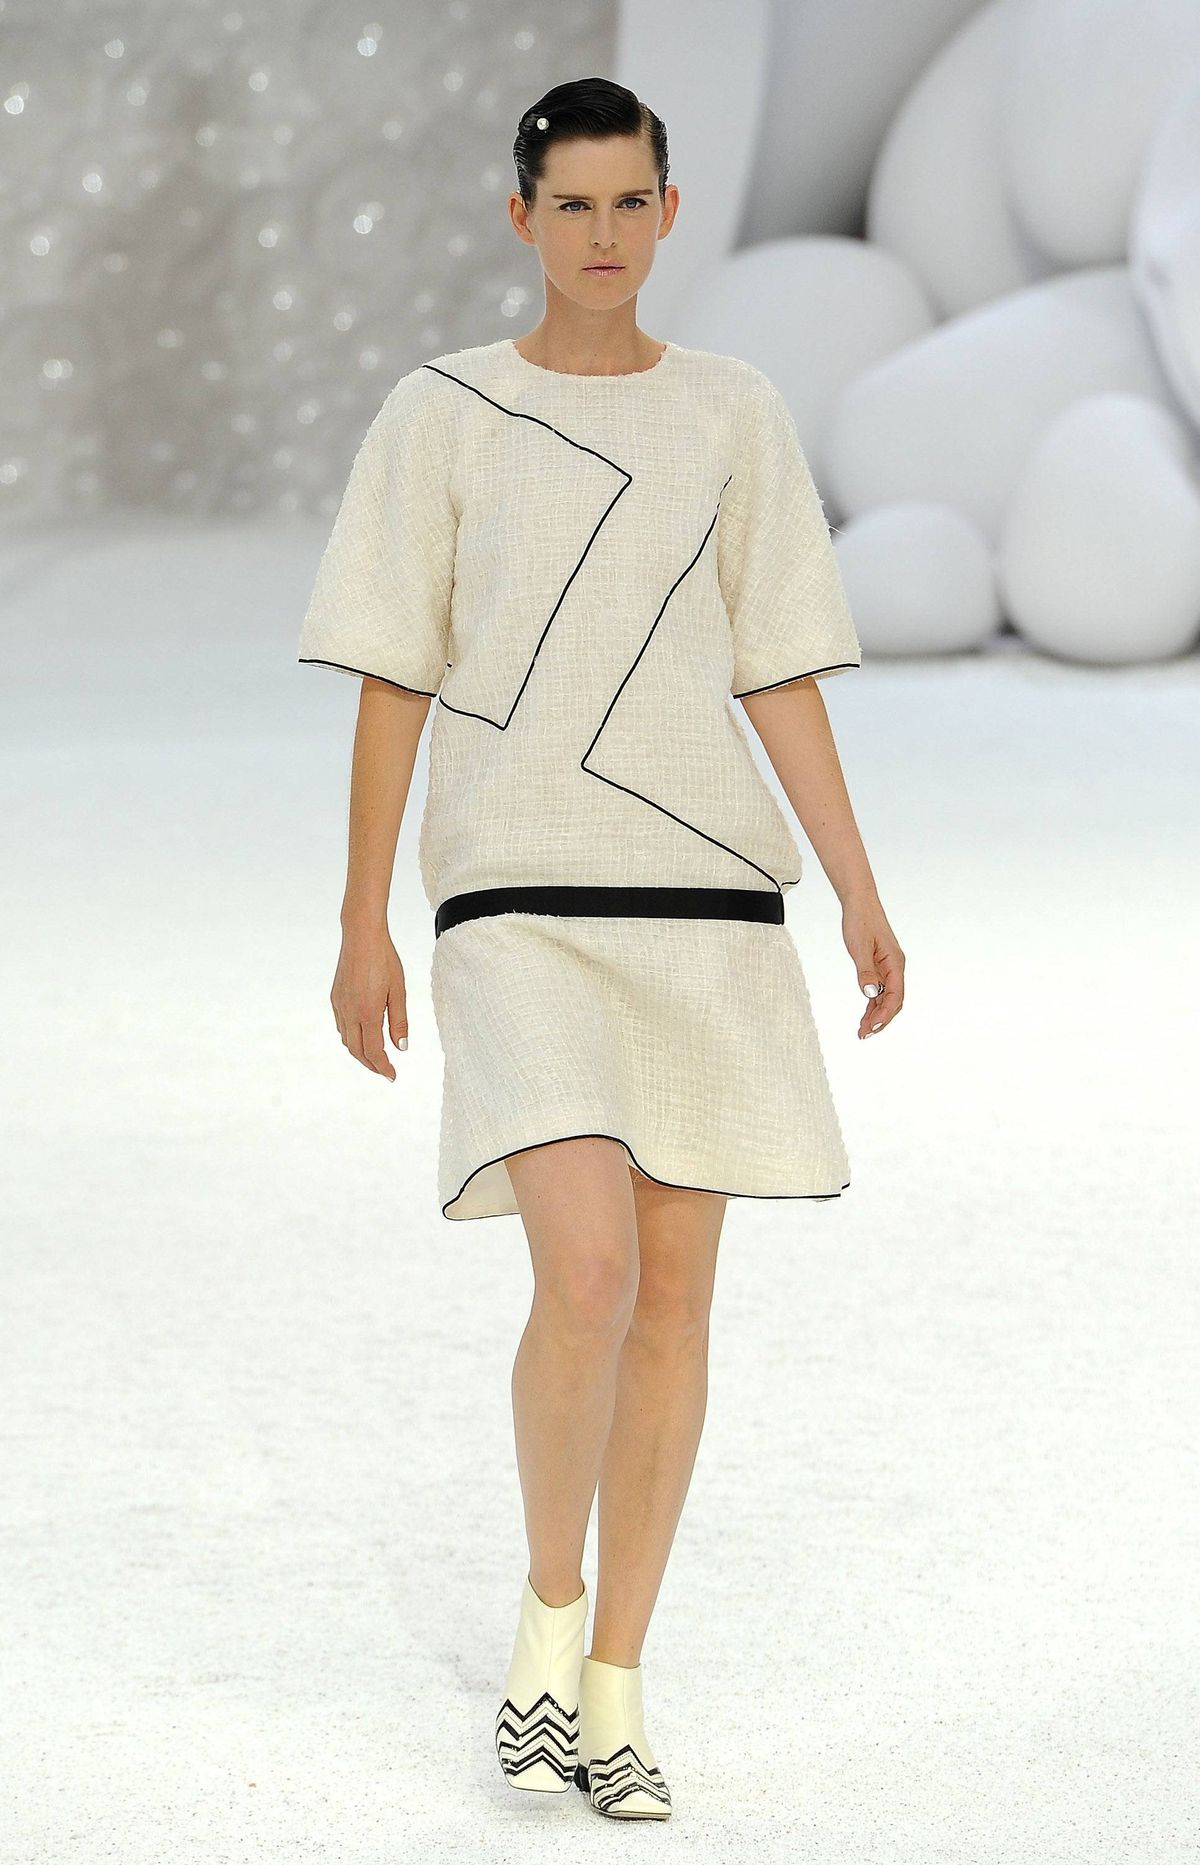 But Lagerfeld did not go overboard with oceanic references. The simplicity of a thin black line as it continues around the dress suggests the designer is having a less-is-more moment.